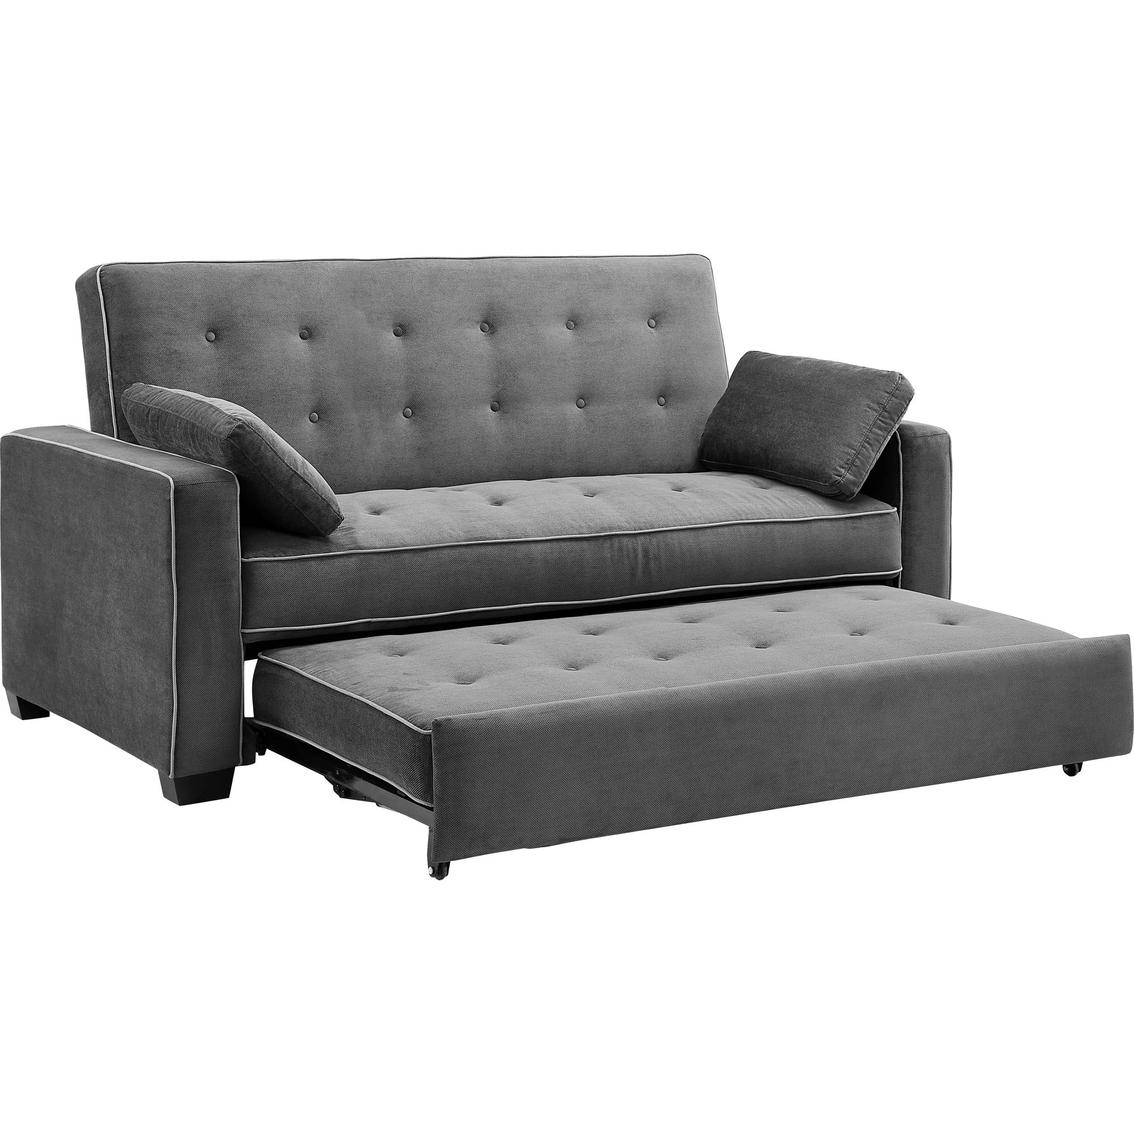 queen size sleeper sofa sectional apartment furniture 20 top convertible sofas ideas